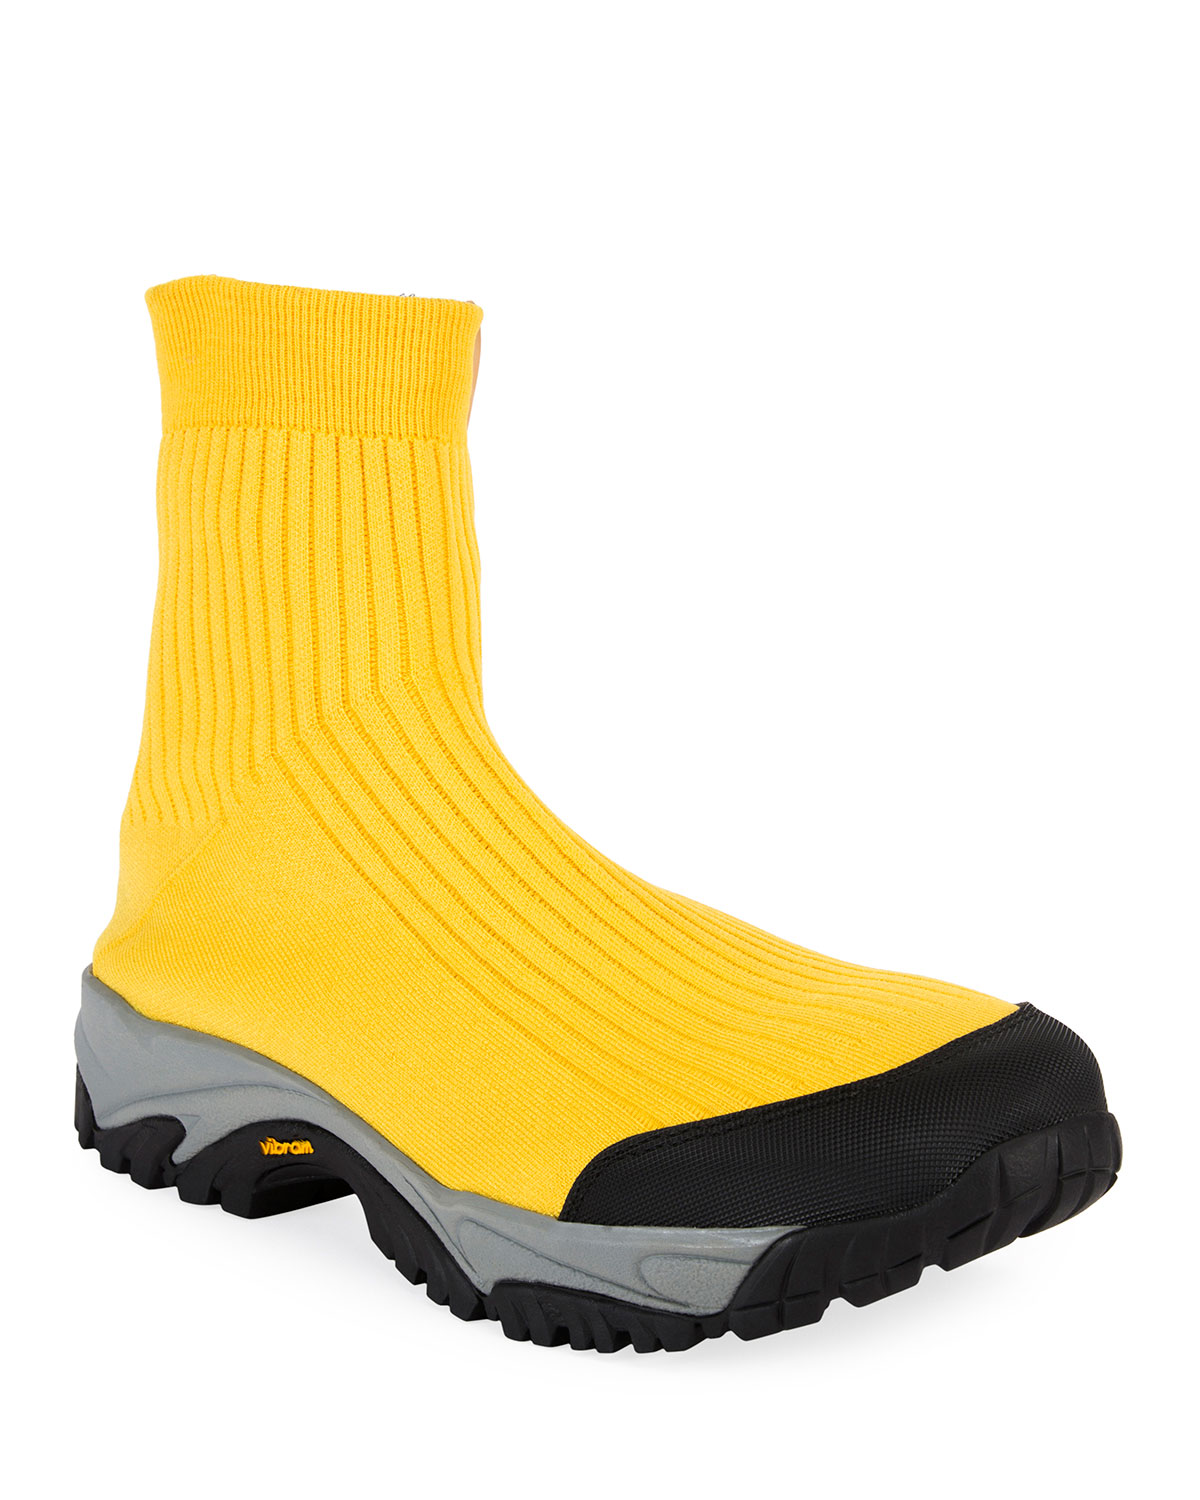 Men's Security High-Top Sock Running Sneakers